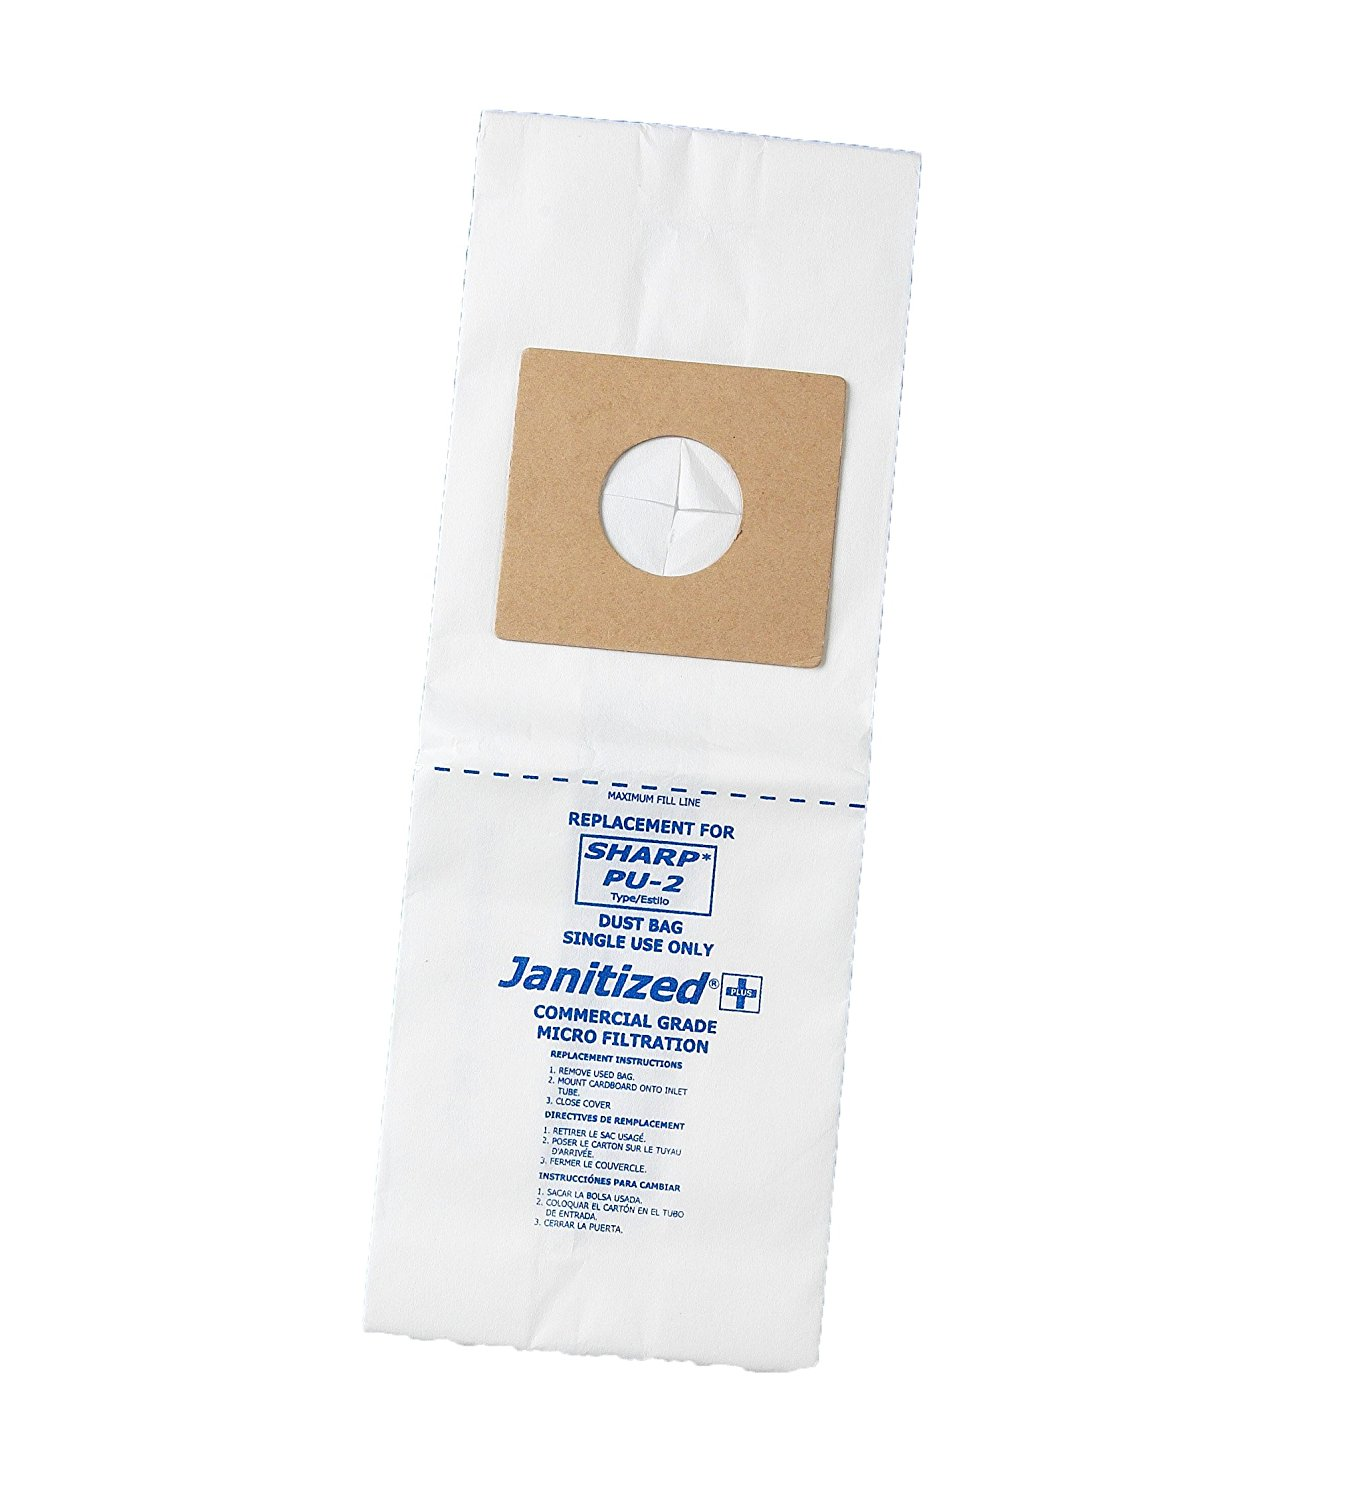 Janitized JAN-SHPU2-2(3) Premium Replacement Commercial Vacuum Paper Bag for Sharp Upright Type PU-2 Vacuum Cleaners, OEM#PU-2 (Pack of 3)